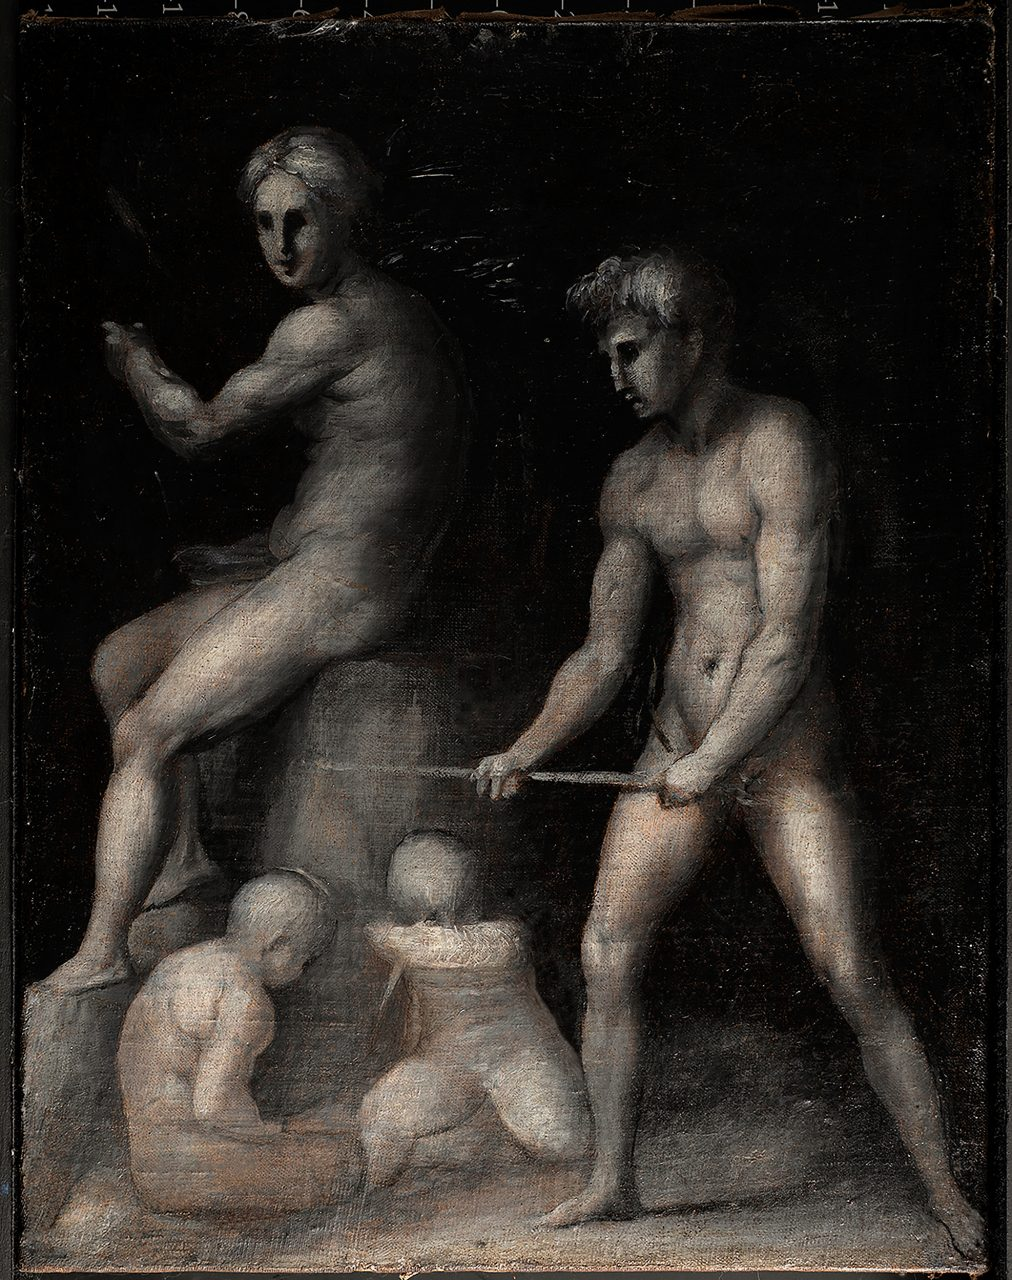 Jacopo da Pontormo, Labors of Adam and Eve, with Cain and Abel, ca. 1515-18, oil on canvas, Private Collection, United States